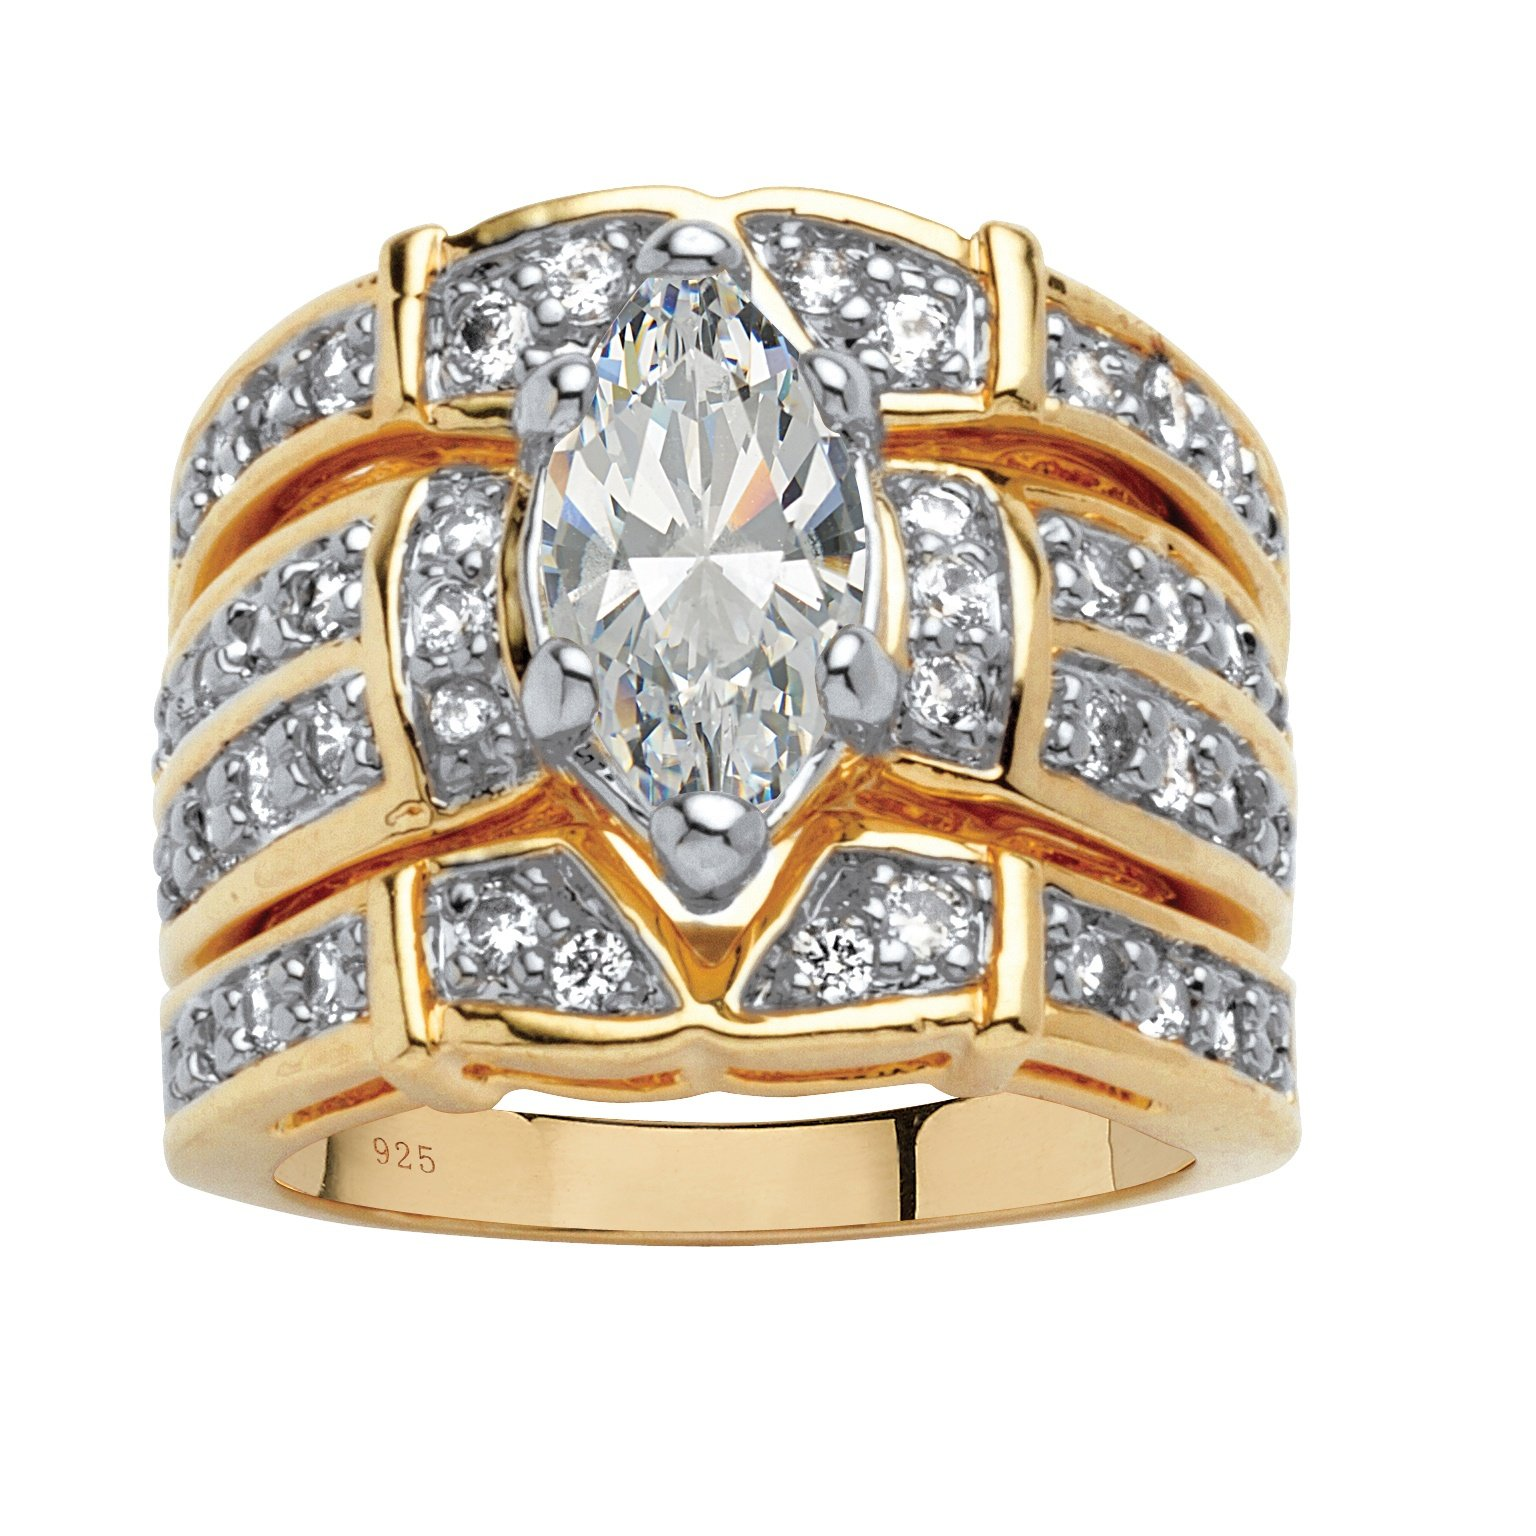 Marquise-Cut White Cubic Zirconia 18k Gold over .925 Silver 3-Piece Multi-Row Bridal Ring Set Size 10